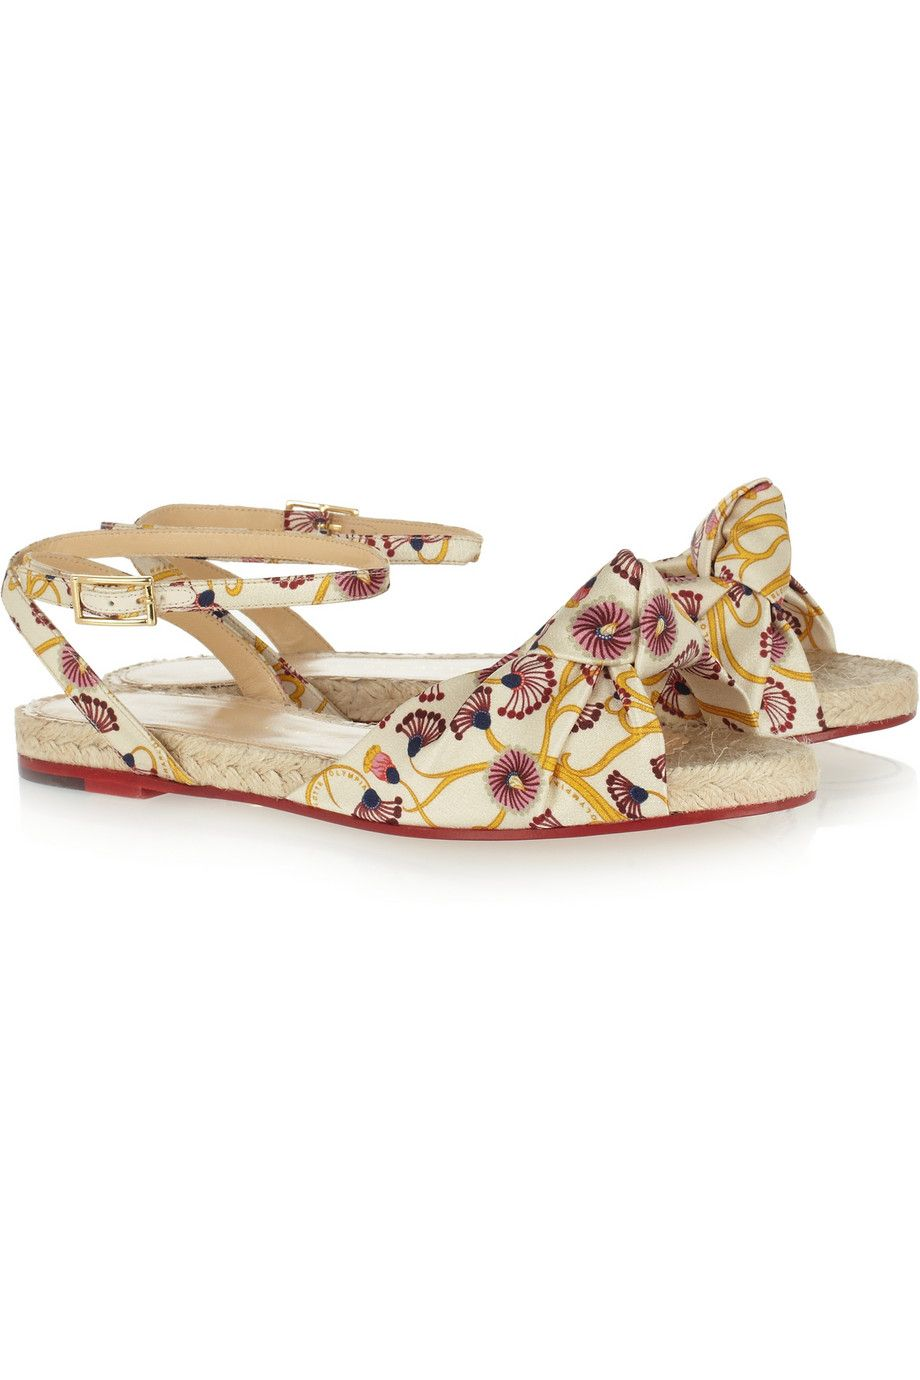 Charlotte Olympia Marina Printed Crepe De Chine Sandals in Yellow | Lyst